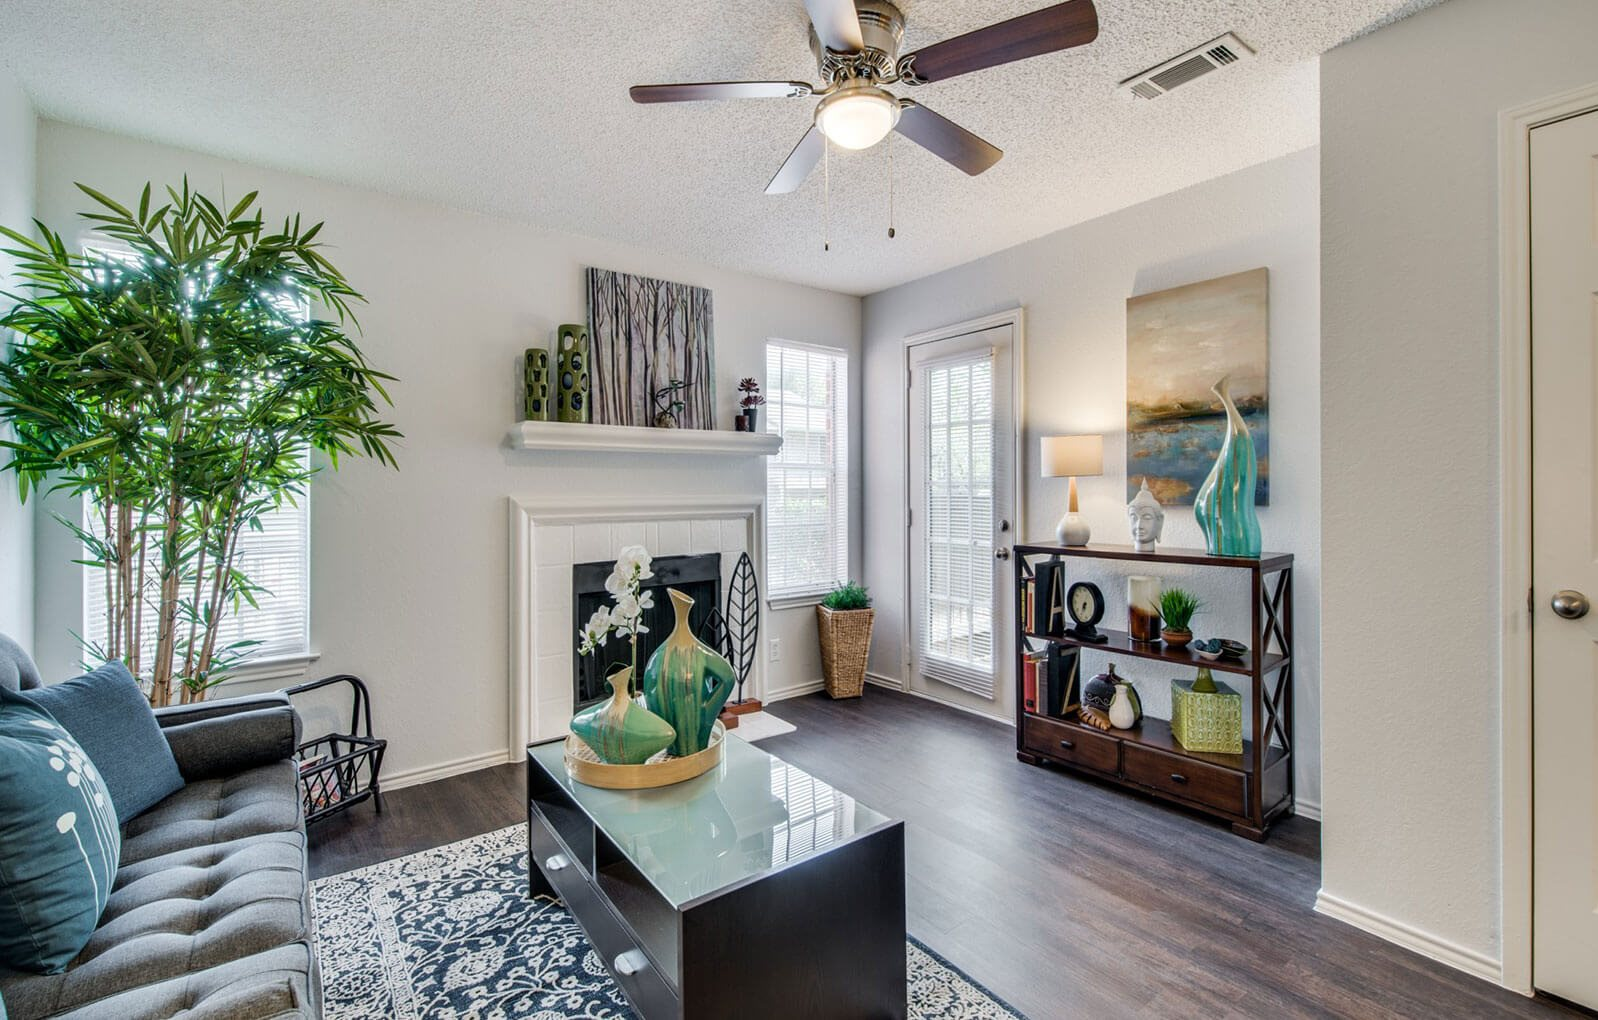 Charming Living Room With Standard Fireplace at CLEAR Property Management , Wildwood Apartments, Texas, 78752